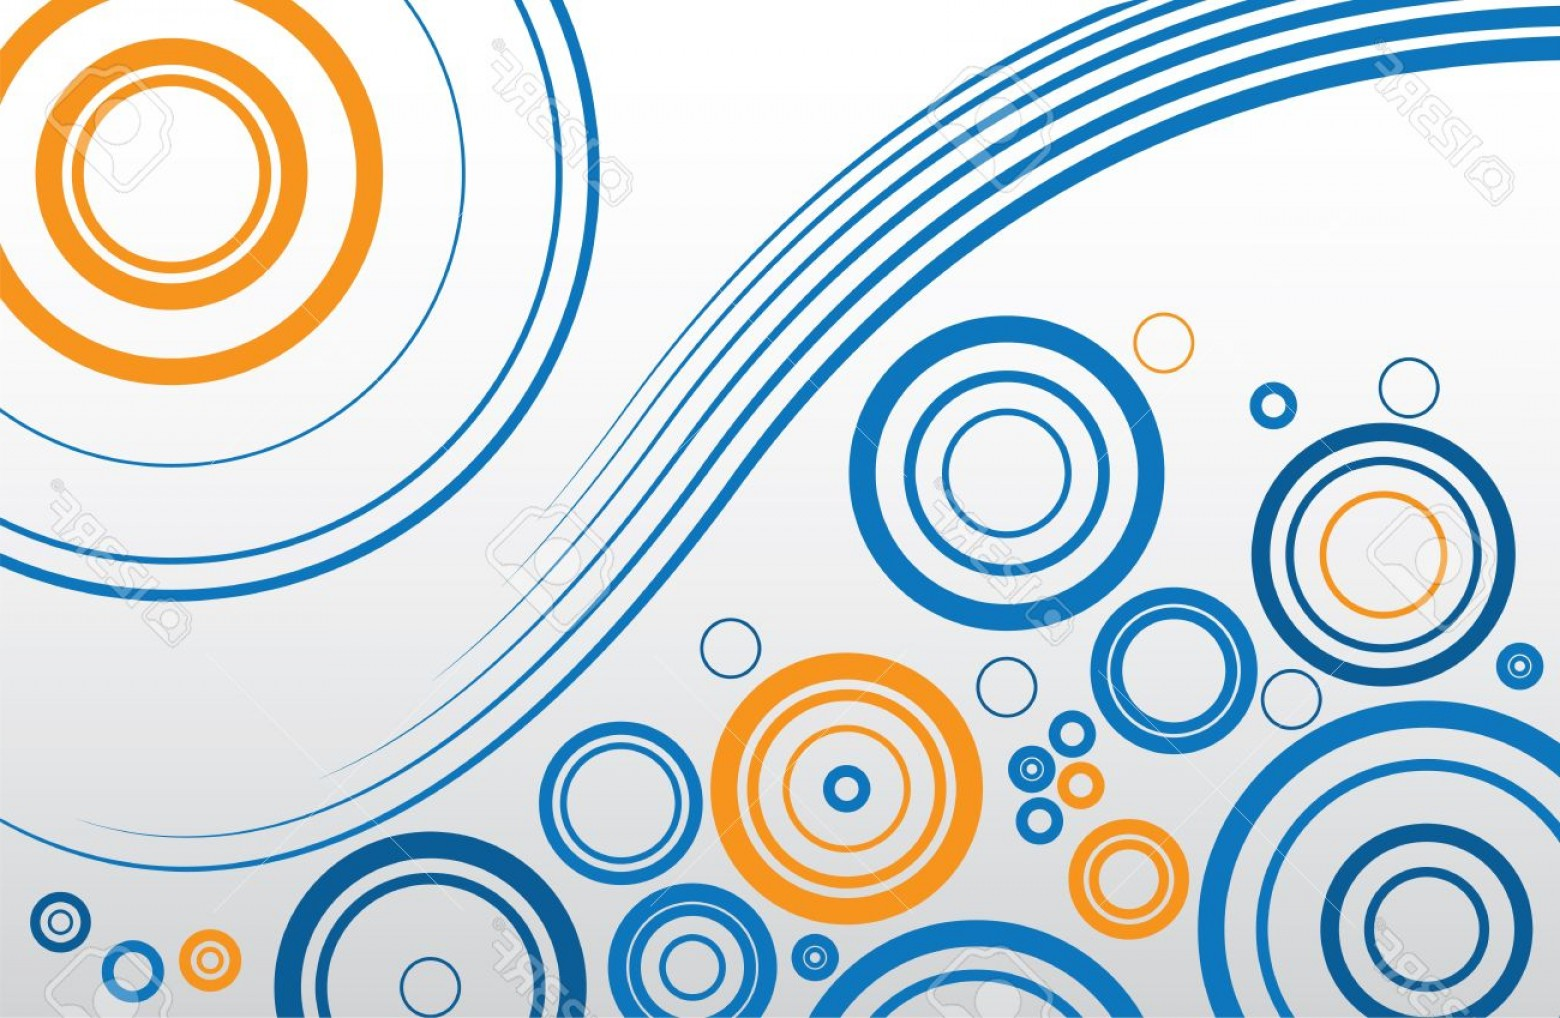 Blue And Orange Circle Vector: Photoabstract Background Of Blue And Orange Circles